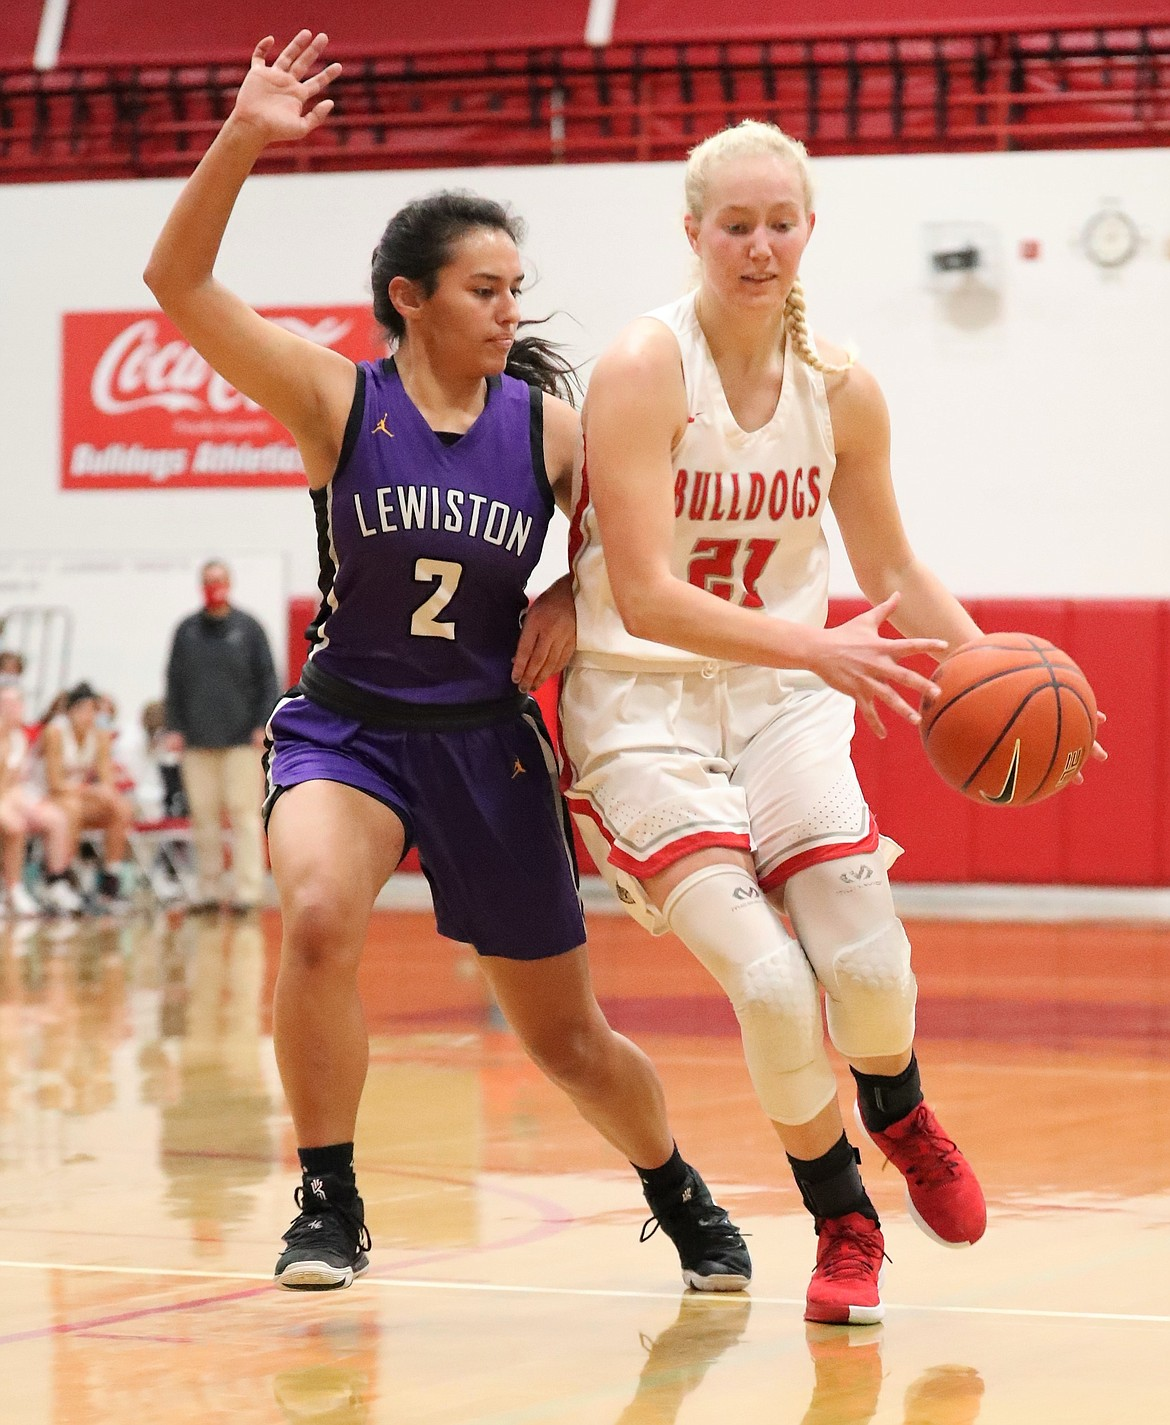 Hattie Larson drives toward the hoop against Lewiston on Jan. 23 at Les Rogers Court. Larson earned a spot on the all-league team for the third straight year.